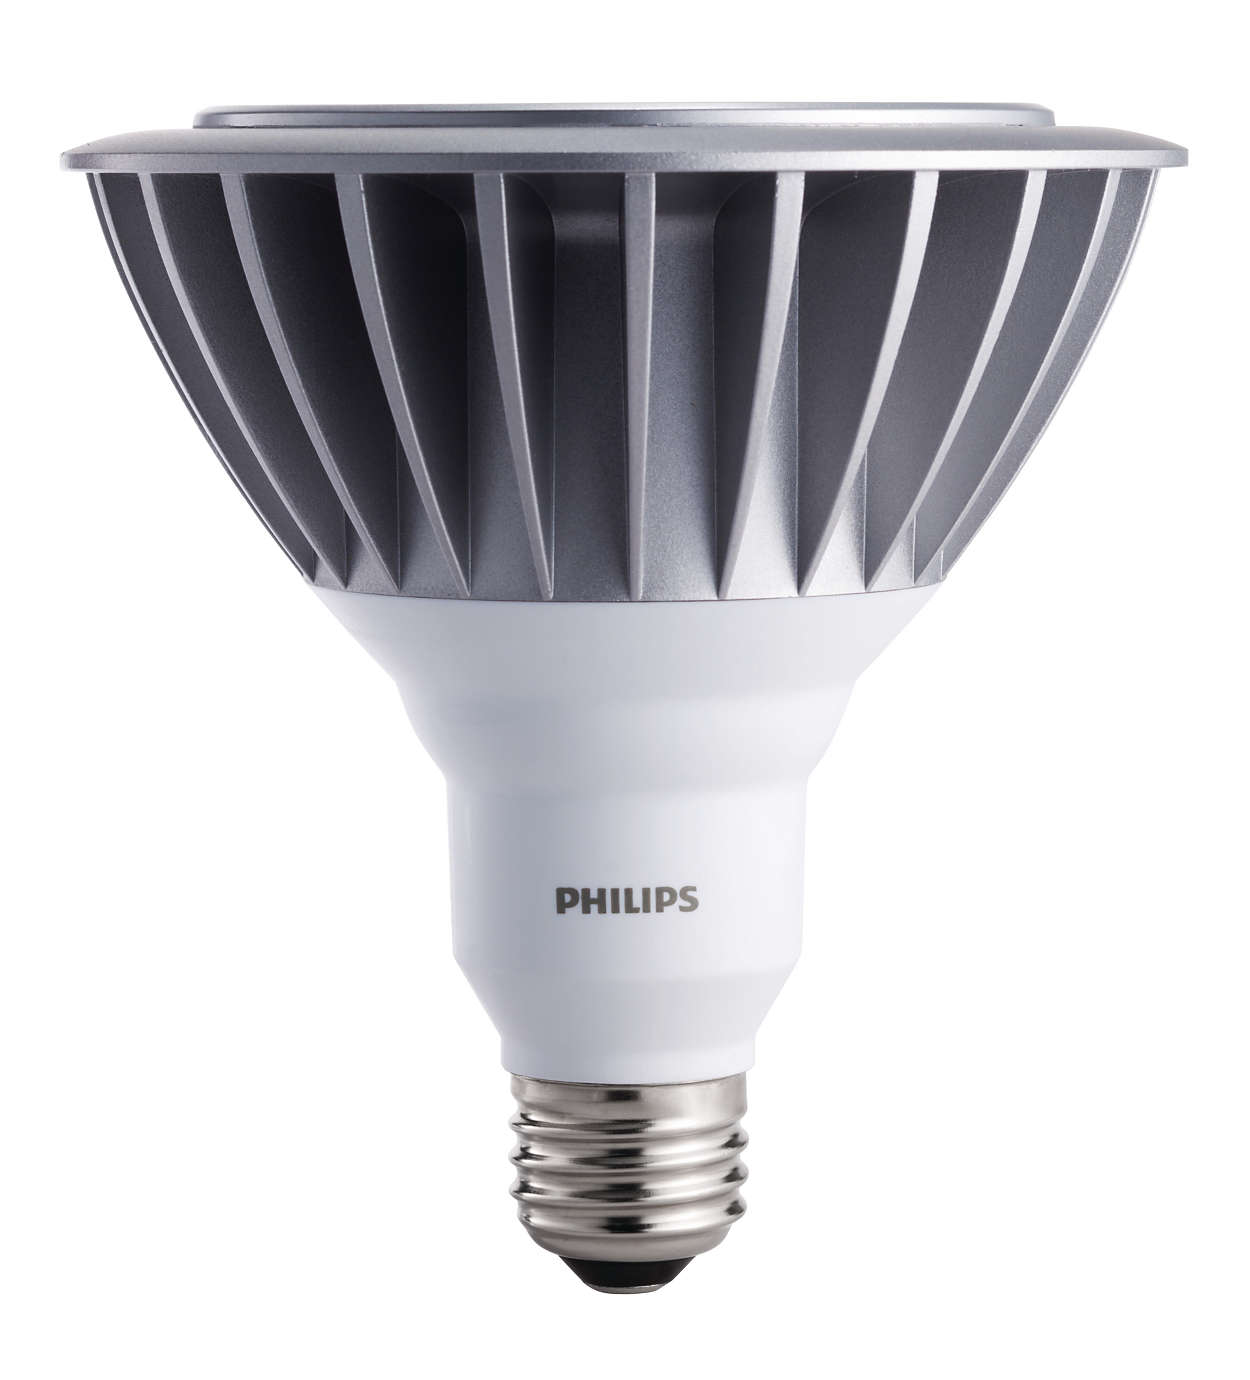 Ambientled energy saving outdoor flood light 046677418434 philips a simple way to beautify your home aloadofball Gallery